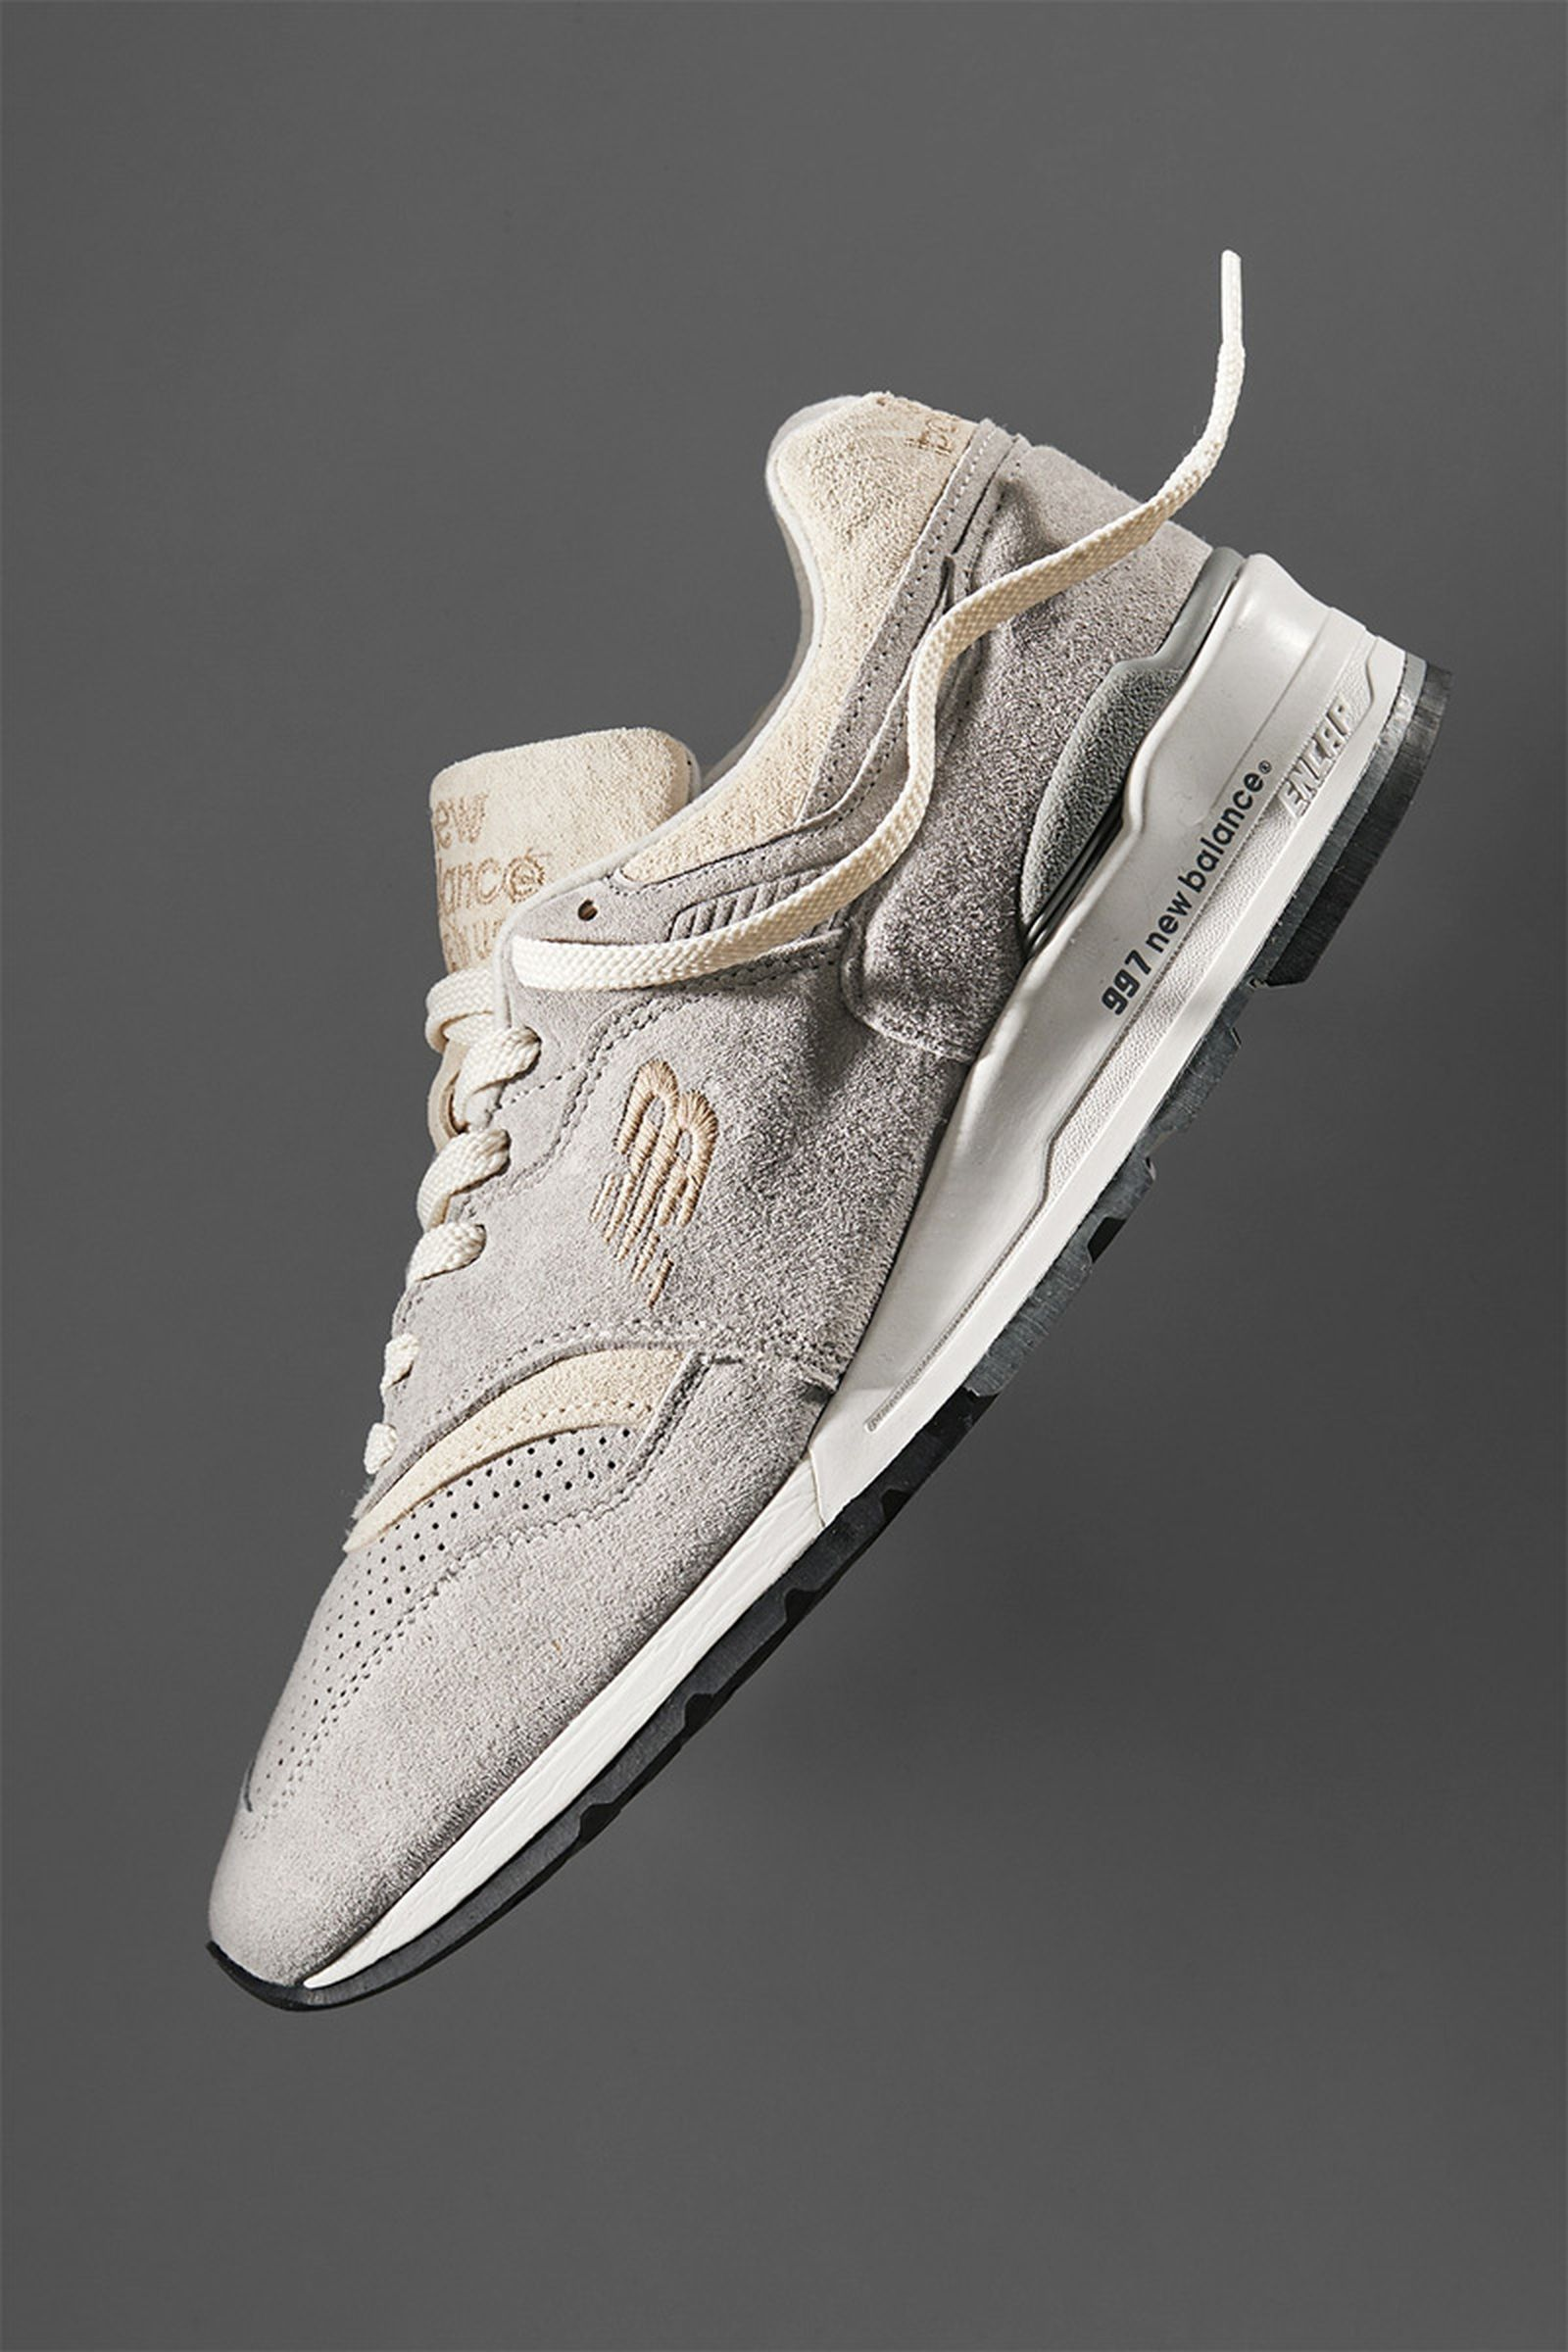 todd-snyder-new-balance-triborough-997-release-date-price-05